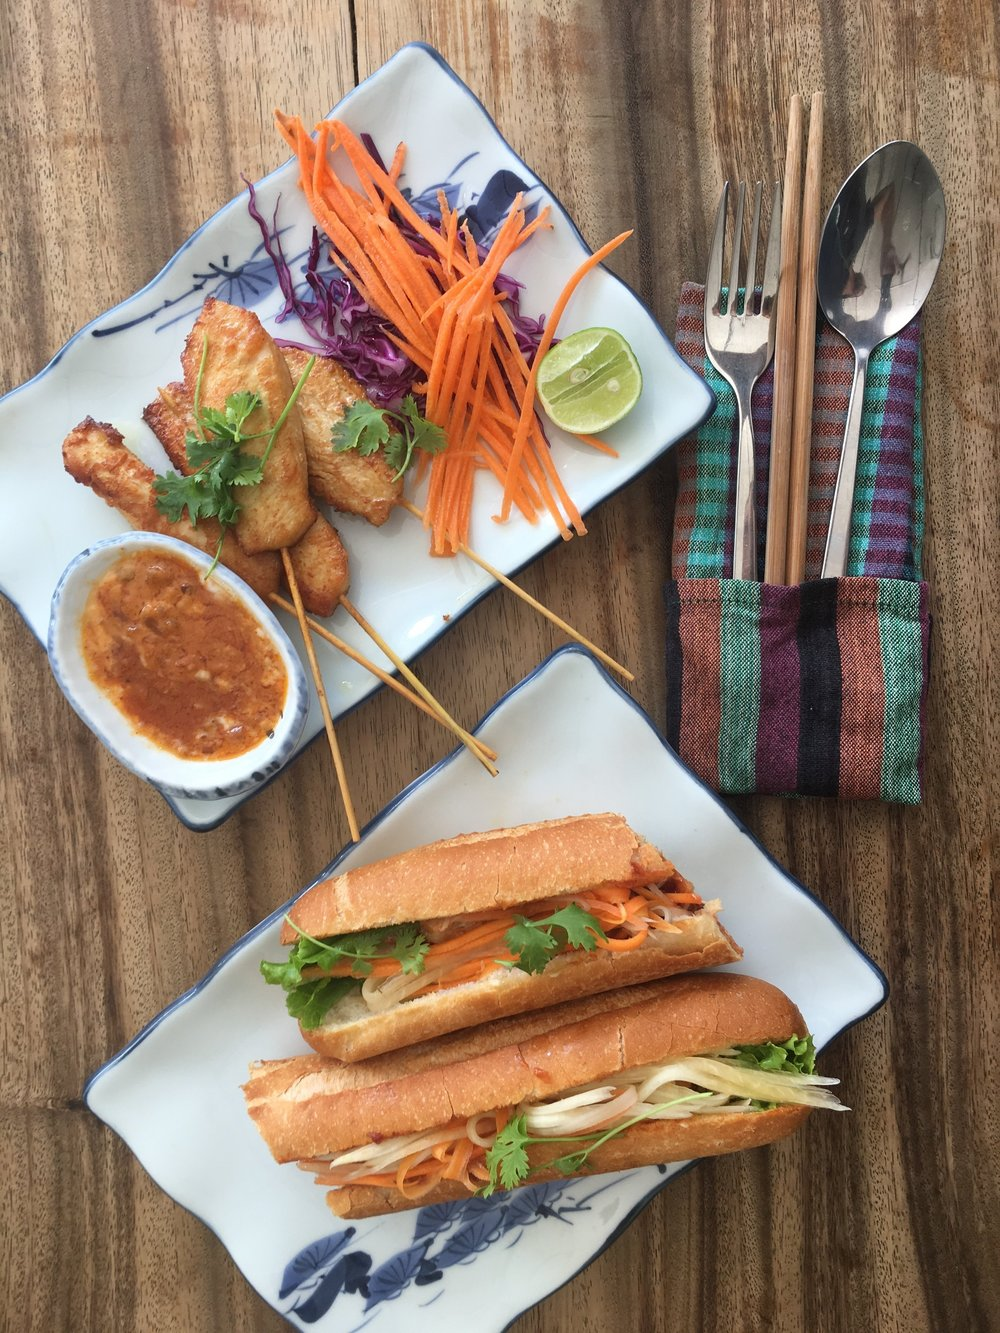 Chicken satay and Num Pang , which is very similar to the Banh Mi in Vietnam